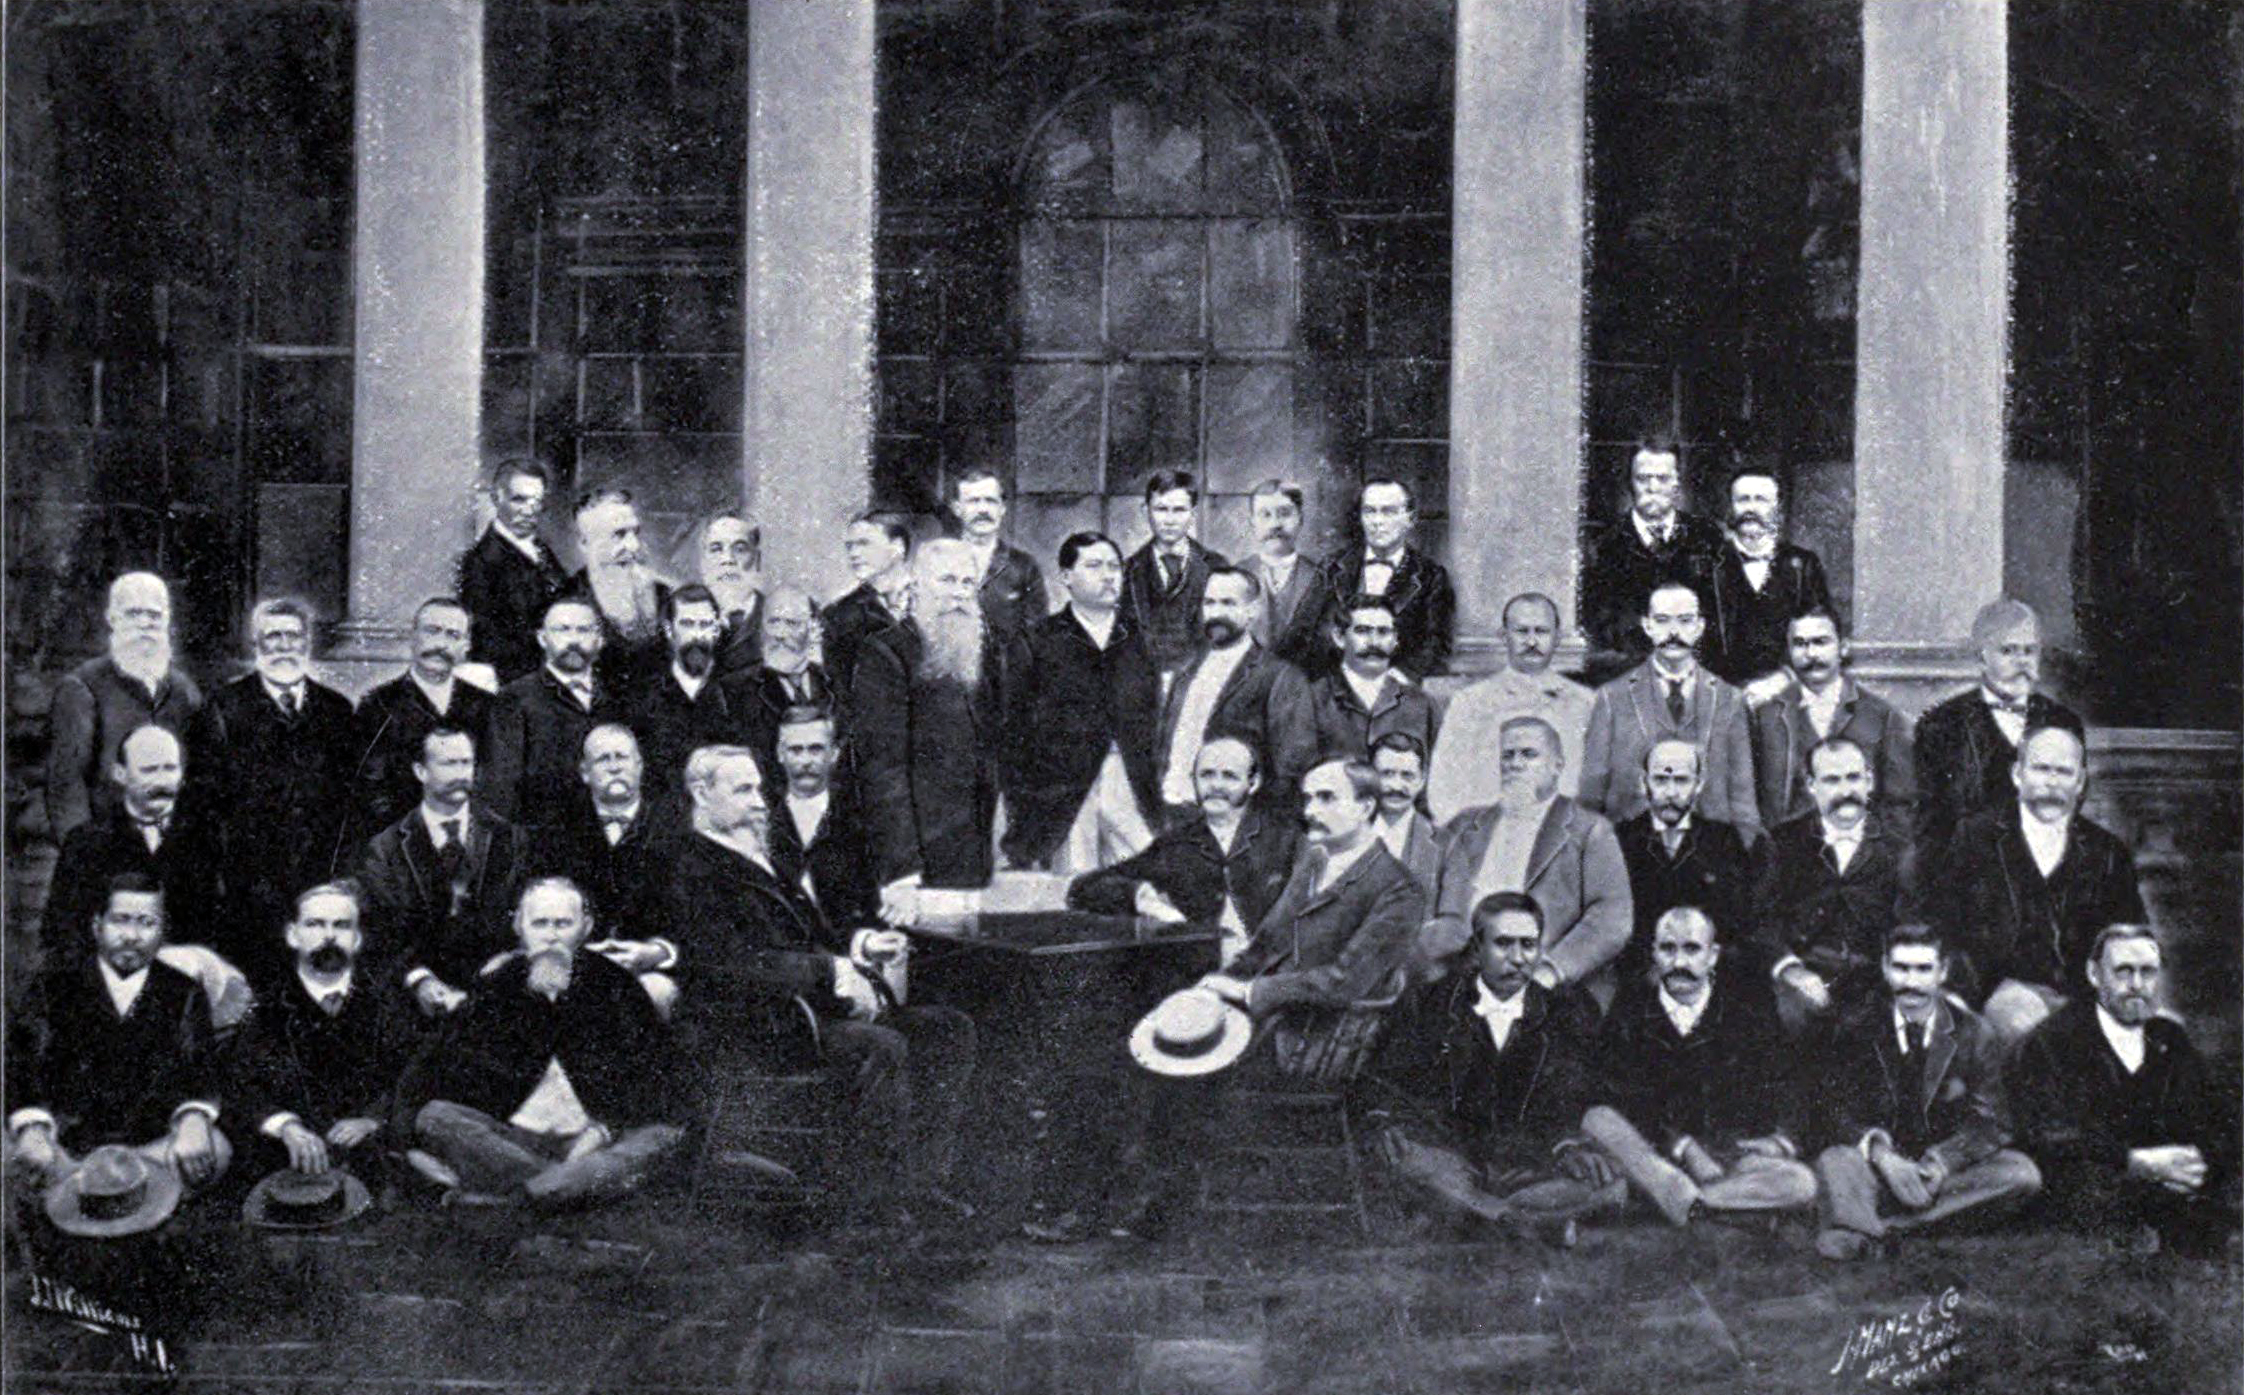 a discussion of the constitutional convention in the united states The constitution of the united states established america's national government and fundamental by delegates to the constitutional convention in philadelphia.